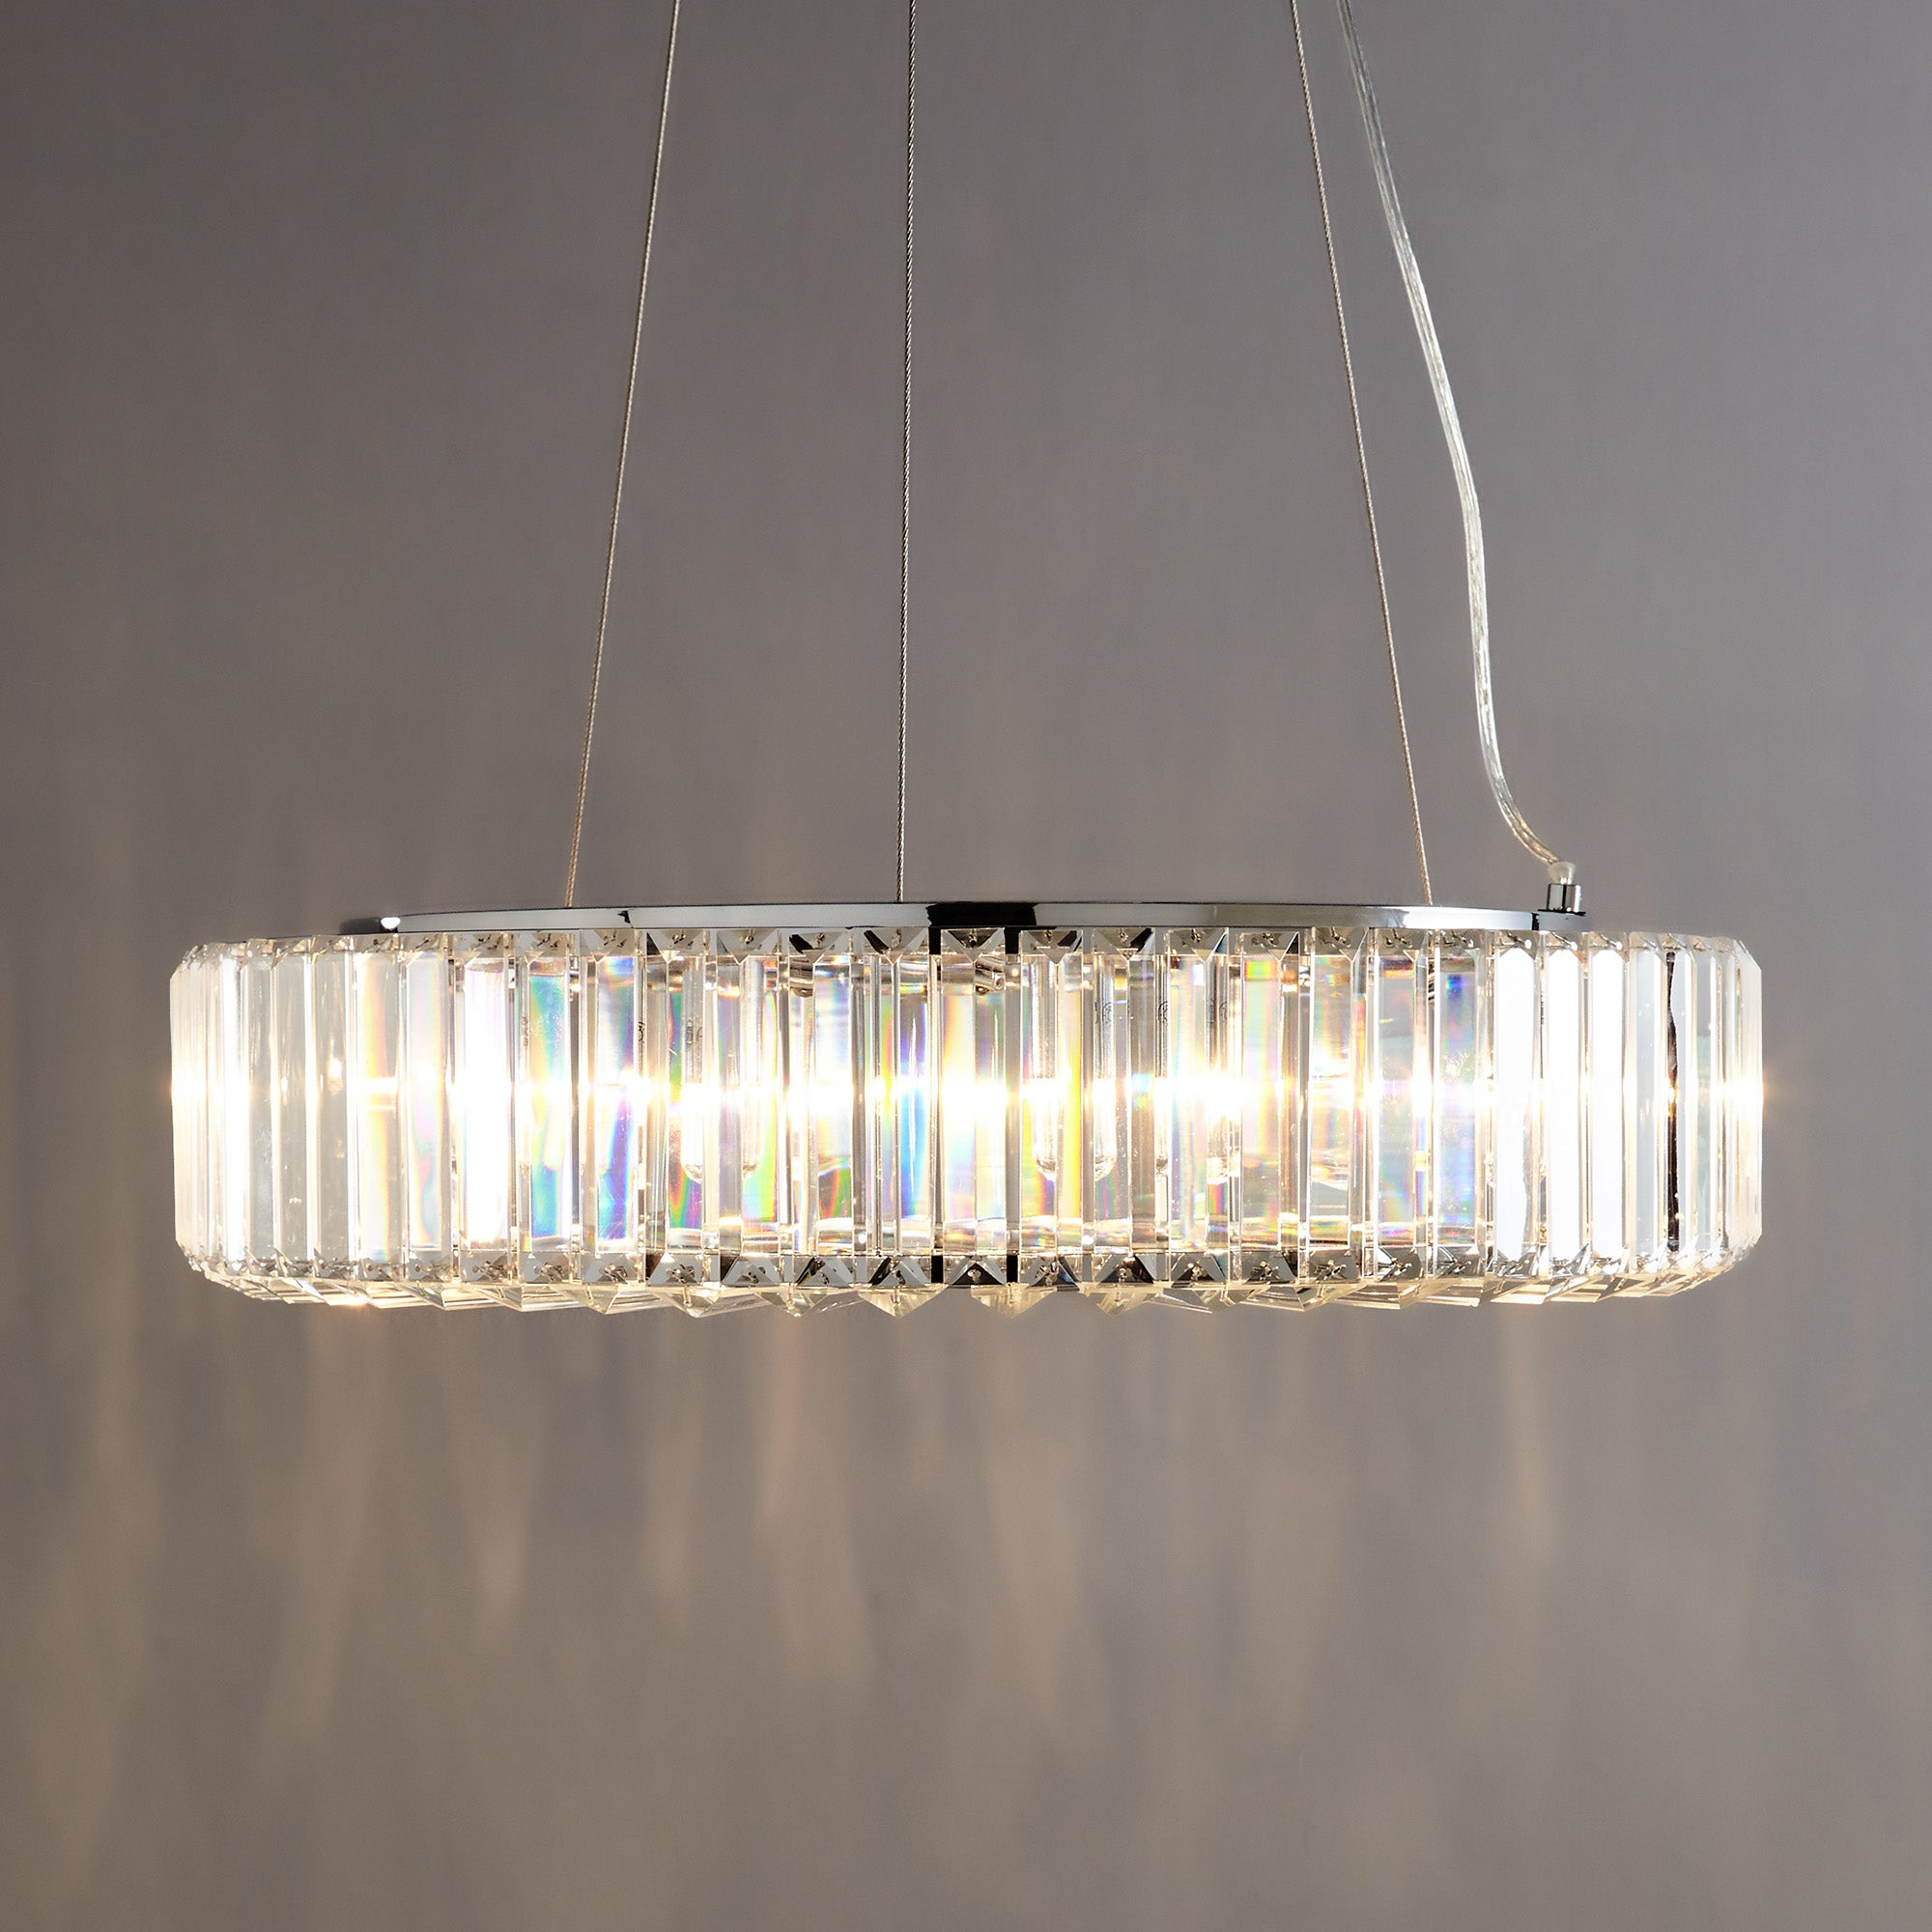 Image of Marquis by Waterford Foyle Chrome 8 Light Bar Pendant Chrome